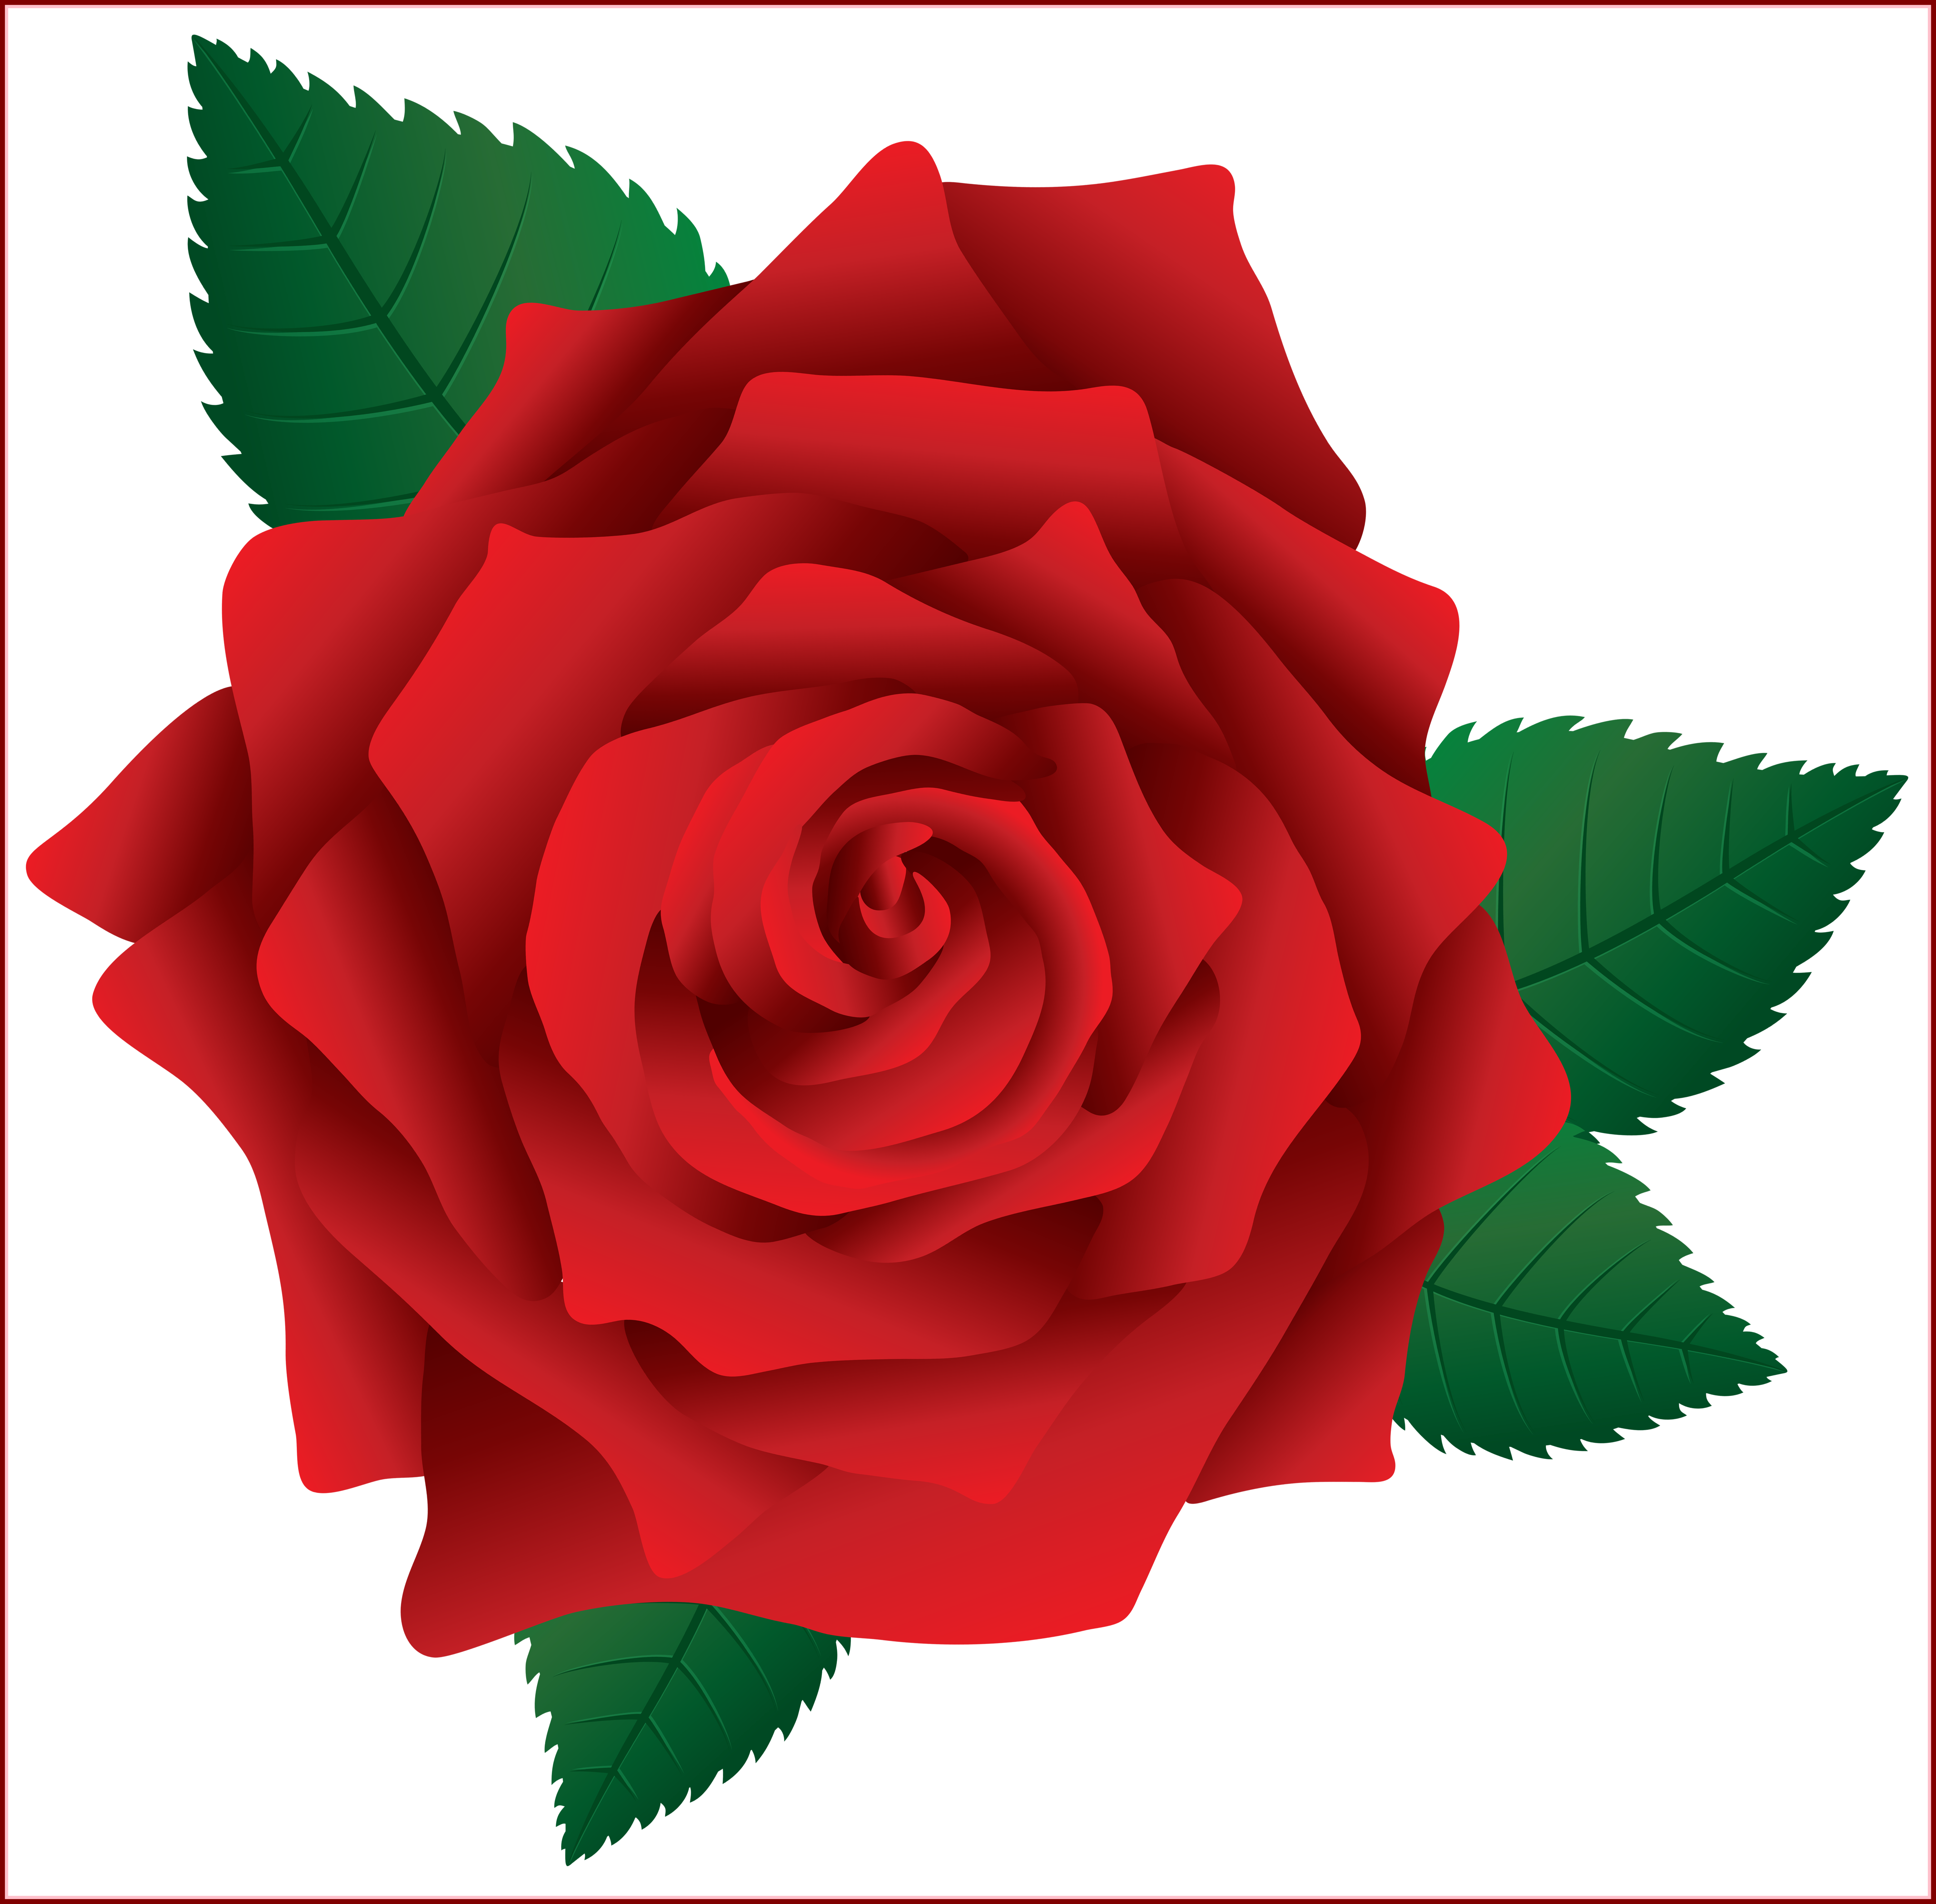 Incredible Clipart And Rose Pict For Red Flower Ideas Rose Png